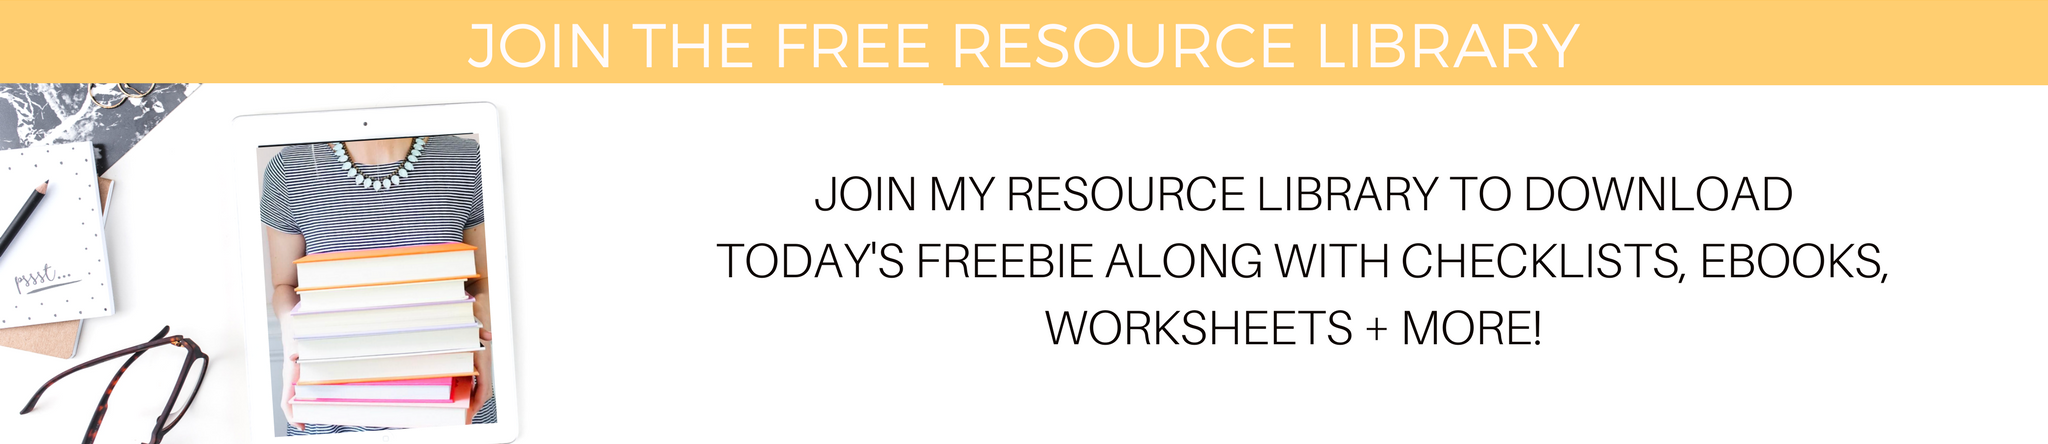 FREE RESOURCE LIBRARY.png